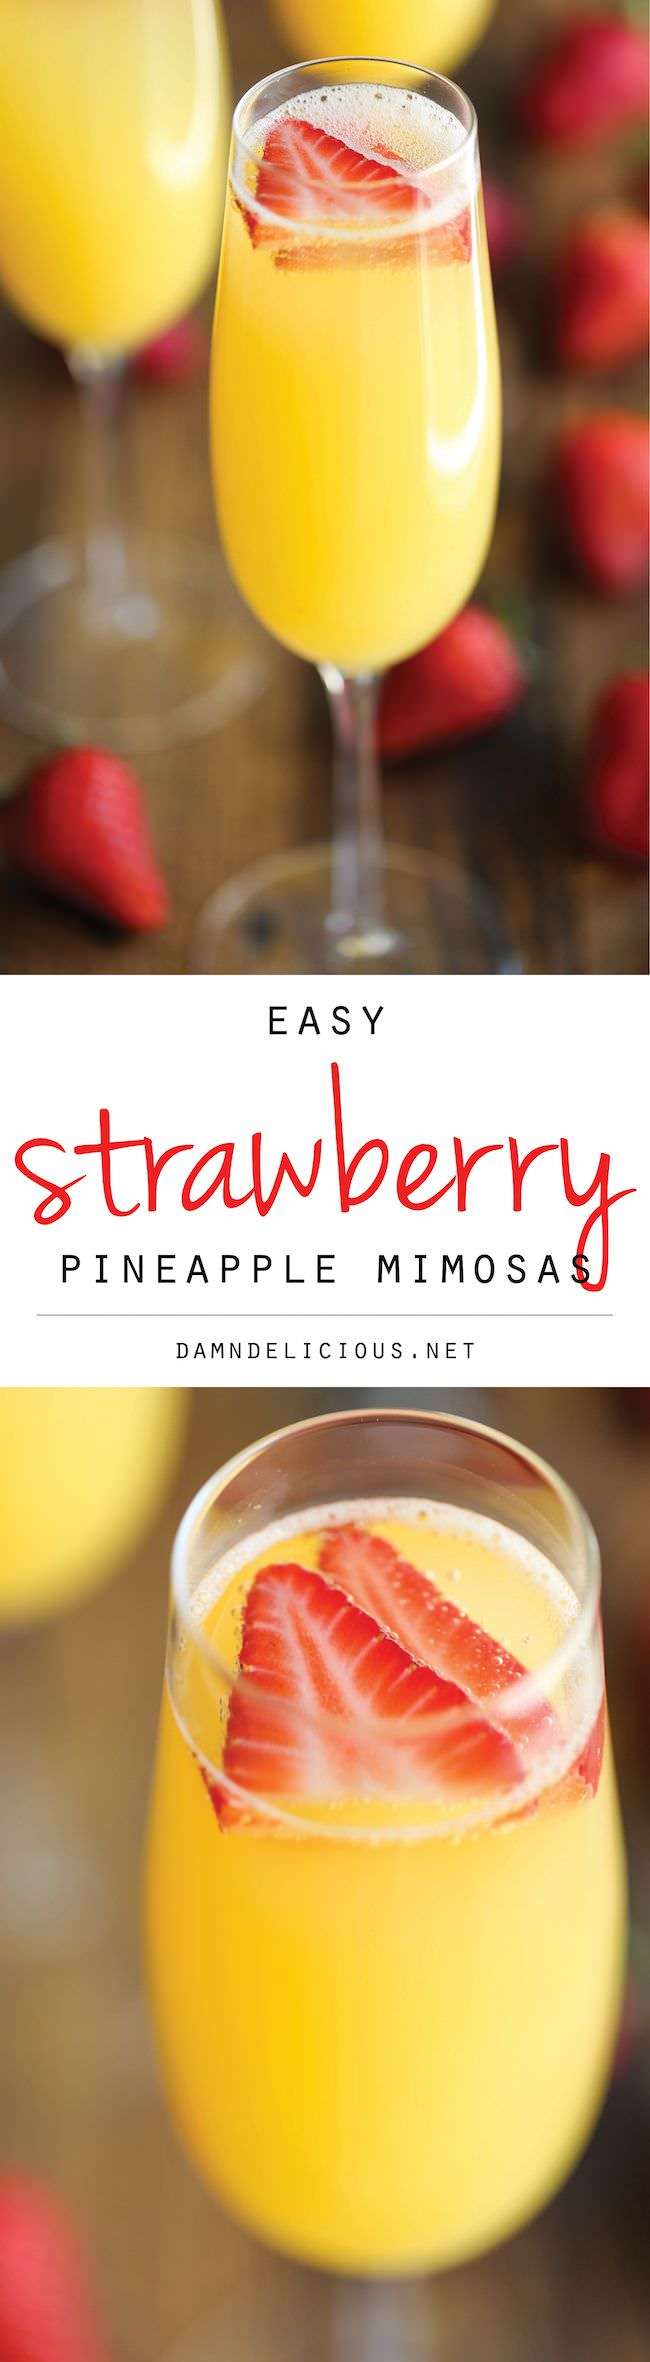 The easiest, quickest, and best 4-ingredient mimosa ever. And all you need is just 5 min to whip this up!